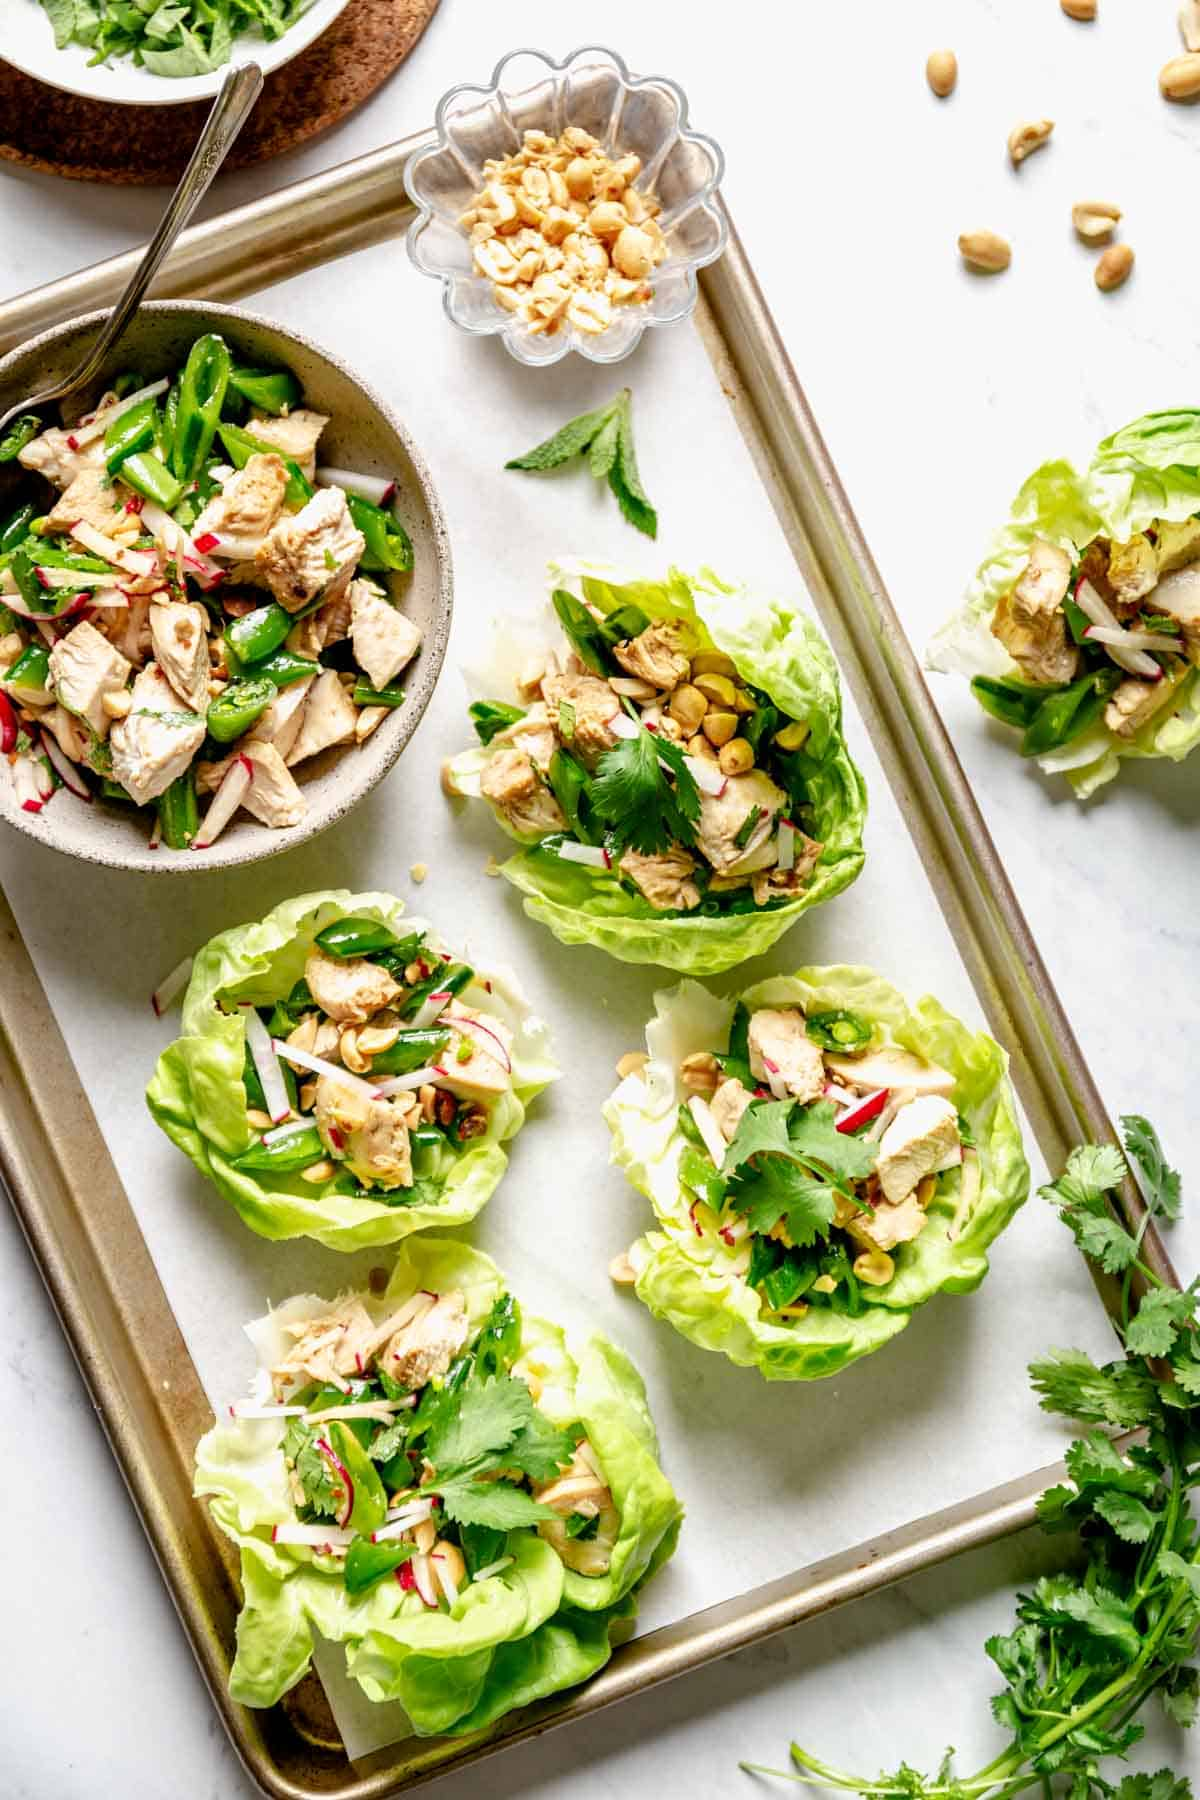 lettuce wraps being assembled on a sheet pan with peanuts